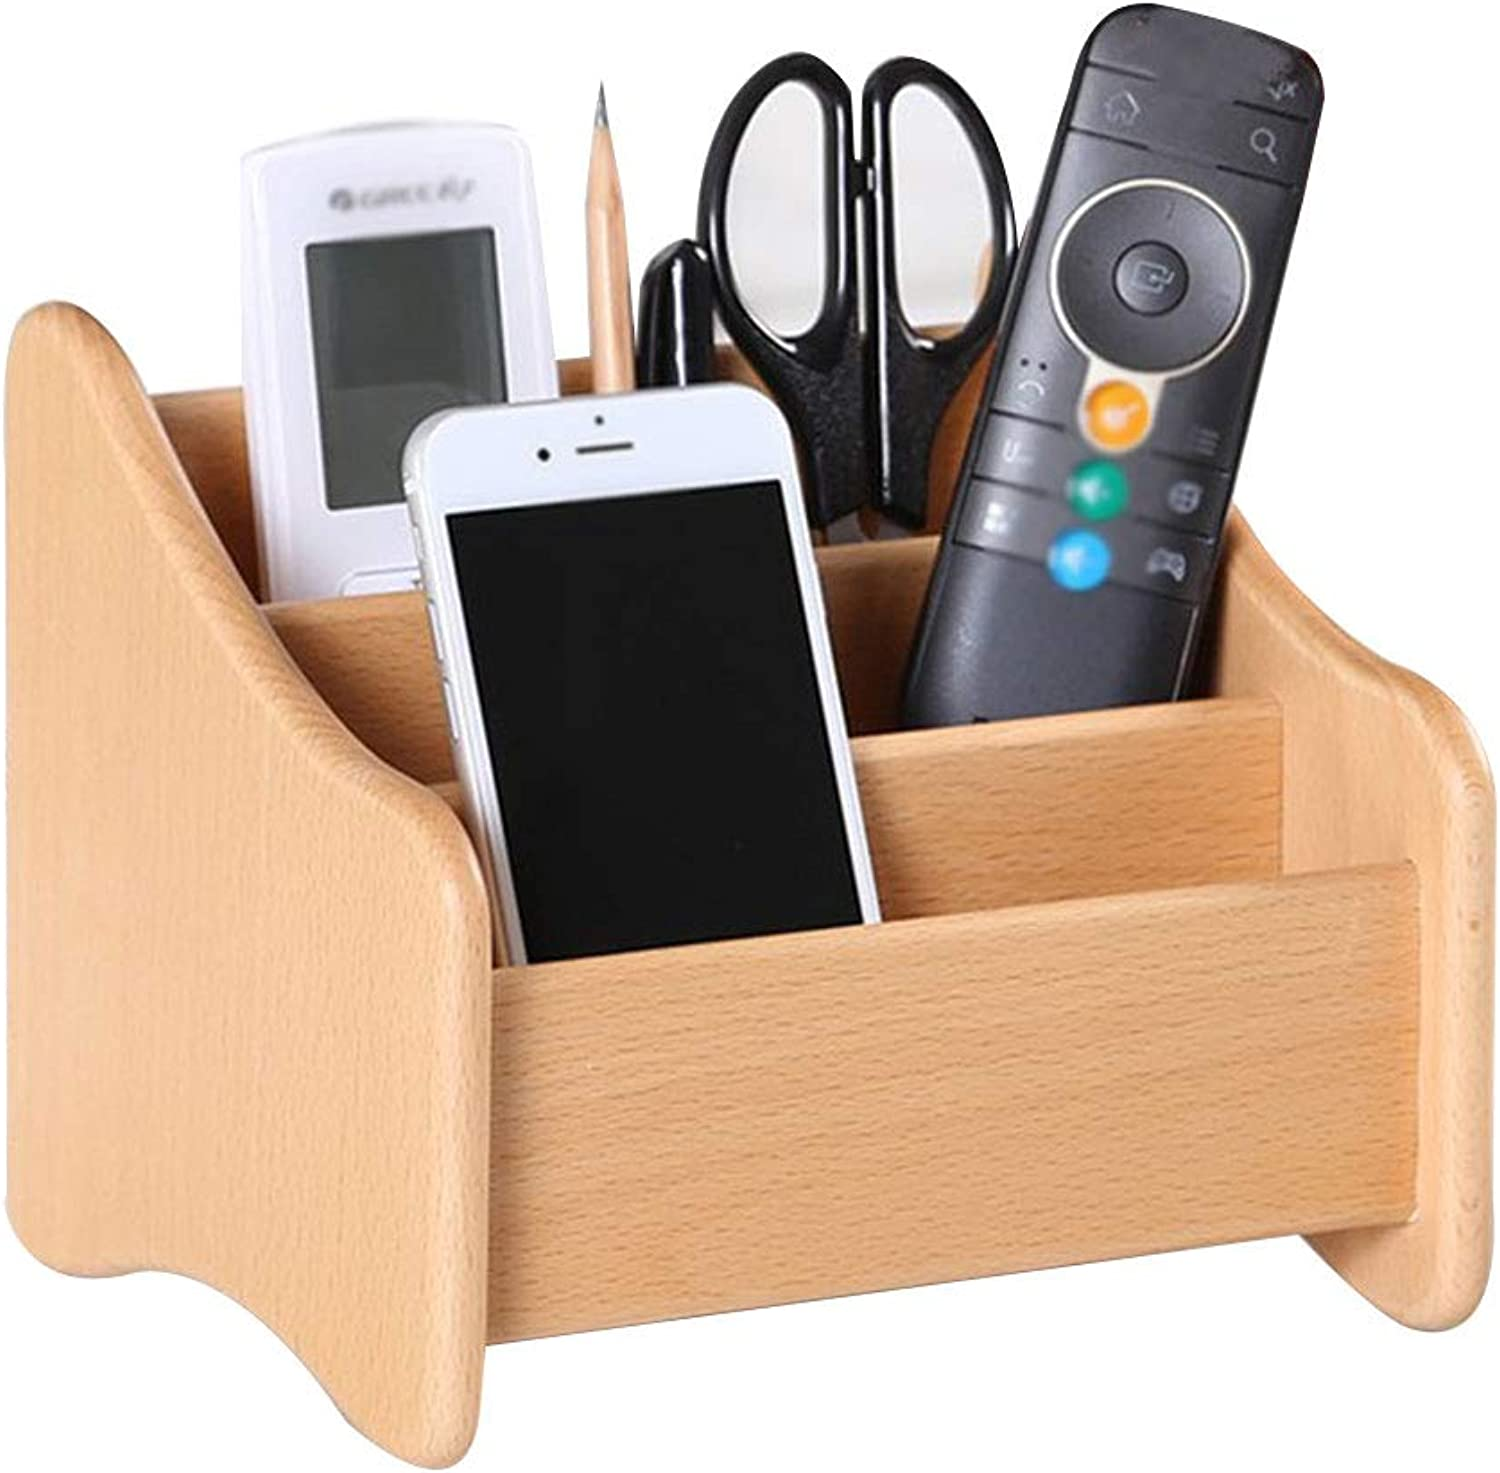 Wooden Shelf Storage,Solid Wooden Unit,Remote Control 2-3 Tier Small Compact Display Storage Rack for Offic Desk Shelf Organiser Pen,Phone Household Products (color   Natural)